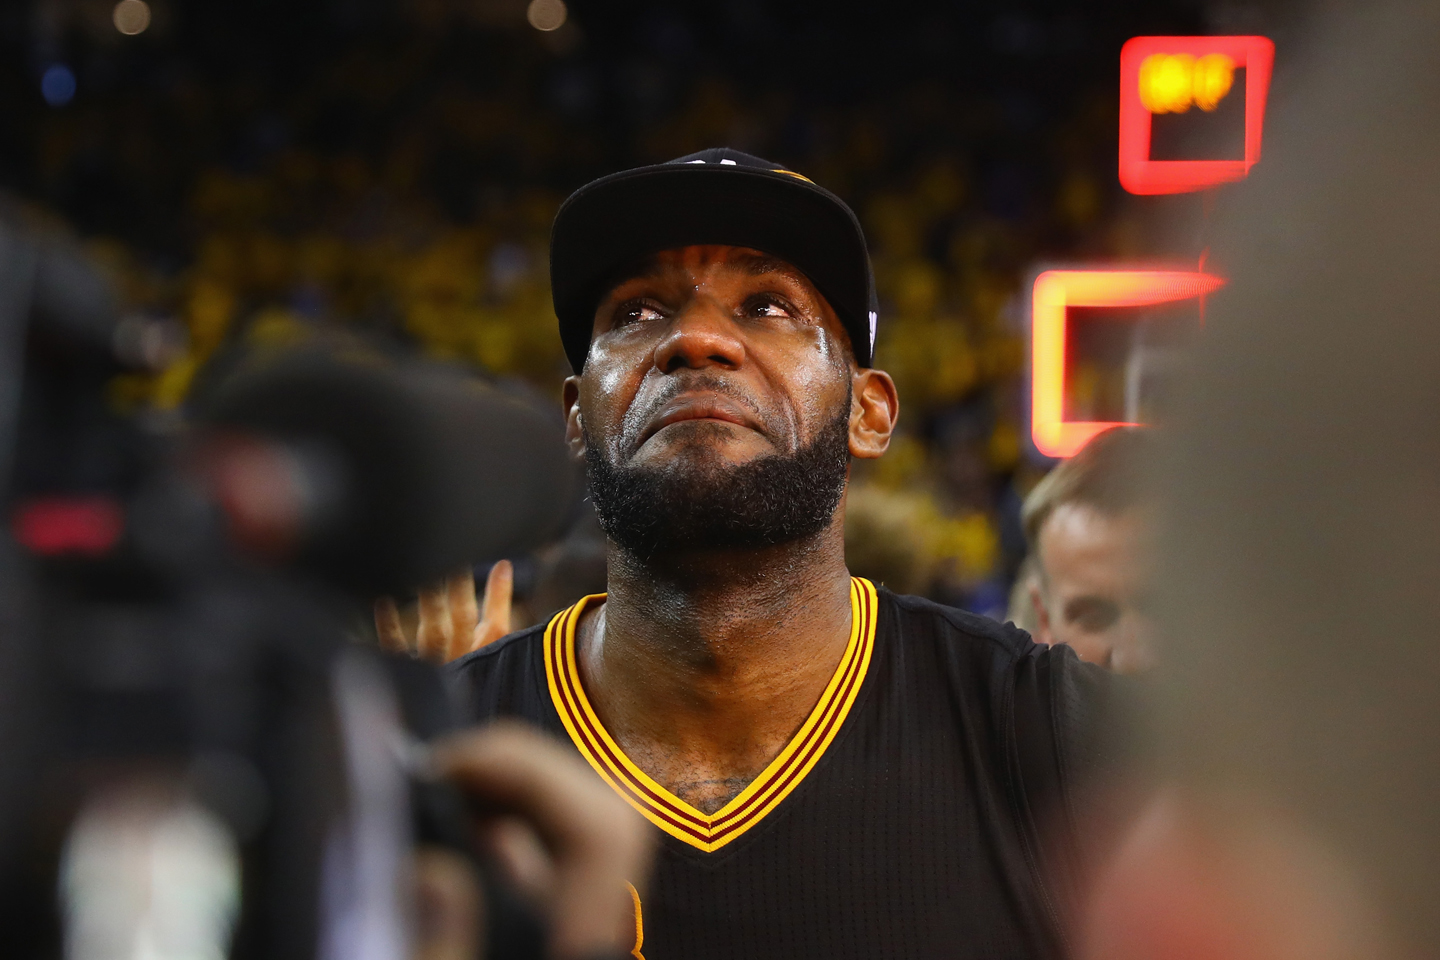 LeBron James #23 of the Cleveland Cavaliers reacts after defeating the Golden State Warriors 93-89 in Game 7 of the 2016 NBA Finals at ORACLE Arena on June 19, 2016 in Oakland, California.